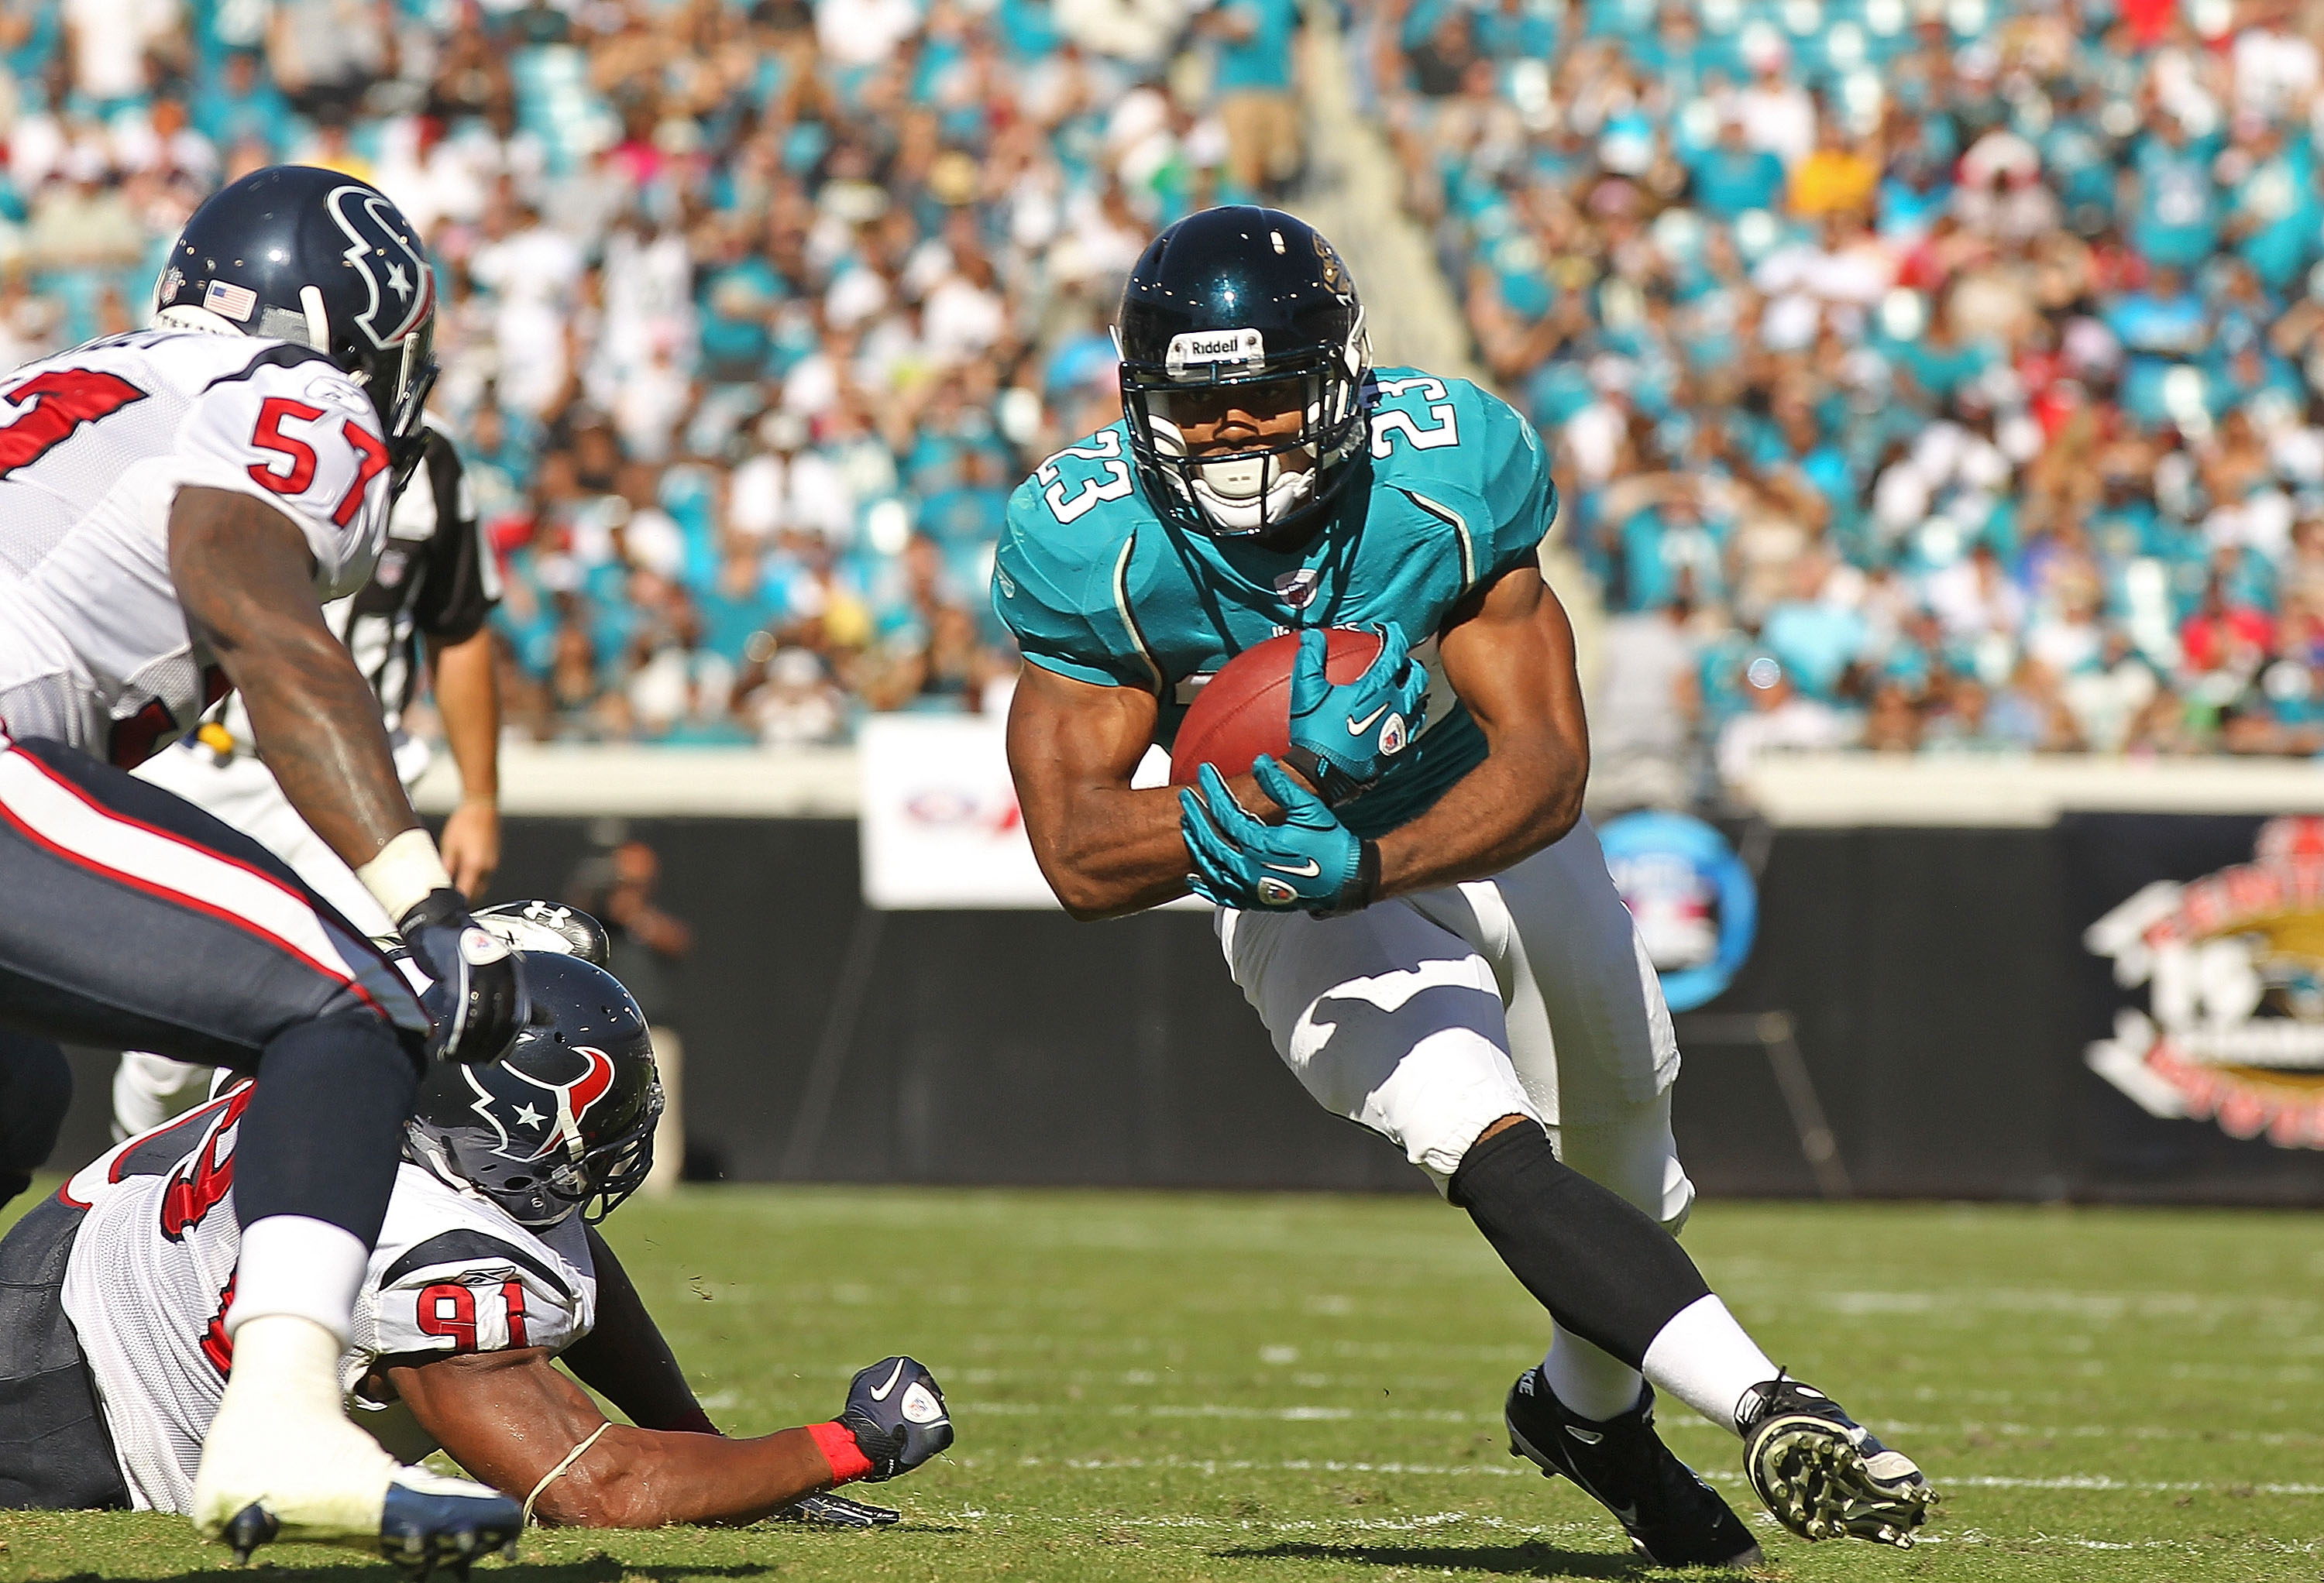 JACKSONVILLE, FL - NOVEMBER 14:  Rashad Jennings #23 of the Jacksonville Jaguars rushes during a game against the Houston Texans at EverBank Field on November 14, 2010 in Jacksonville, Florida.  (Photo by Mike Ehrmann/Getty Images)